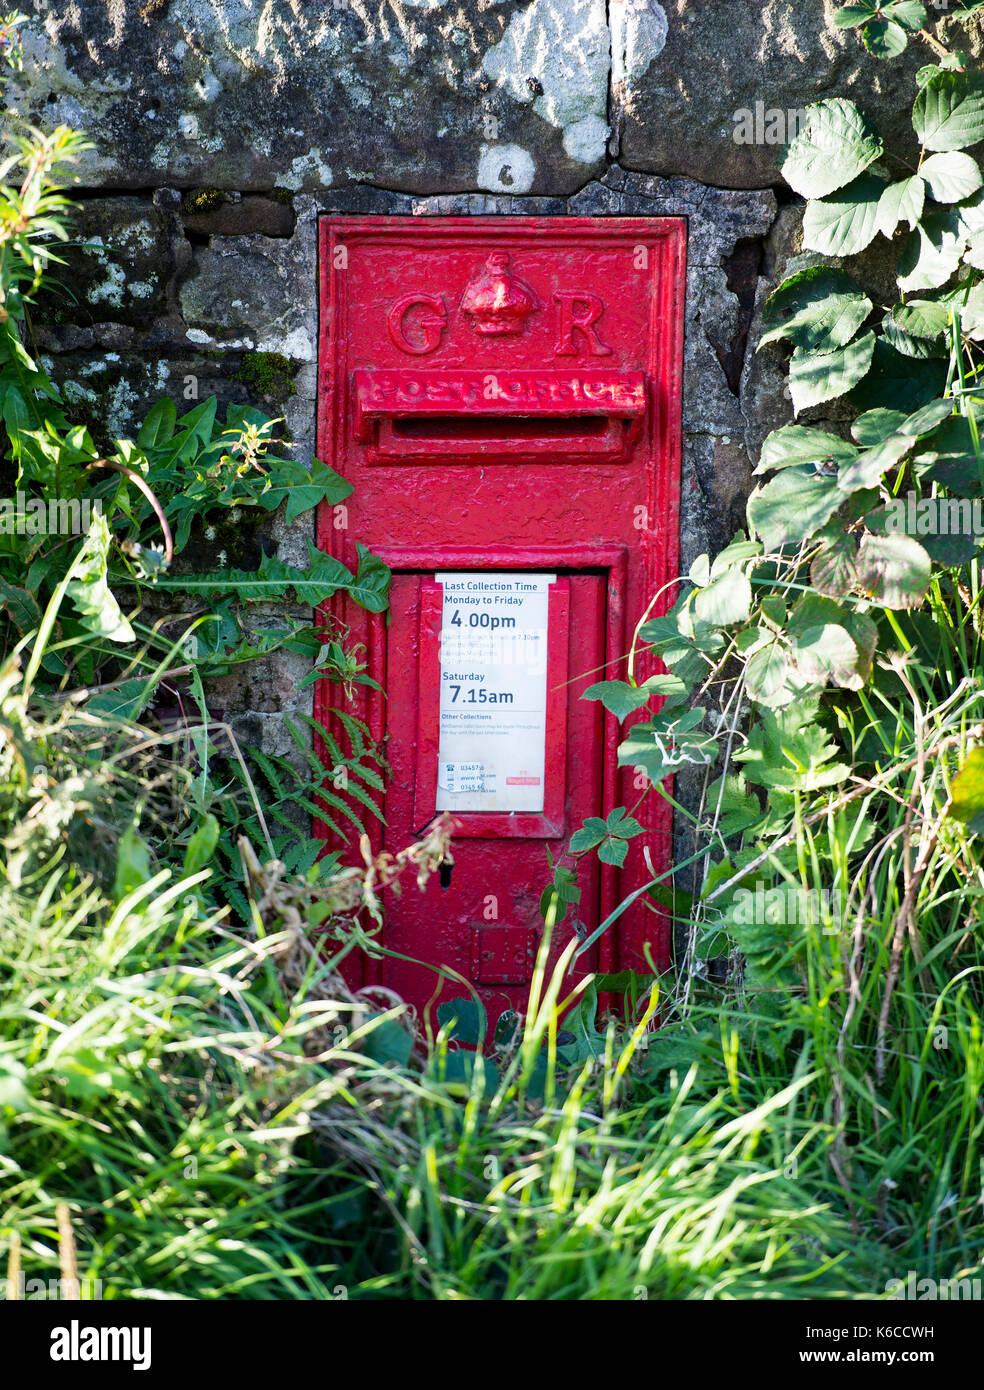 Wall Mounted Post Box with cypher GR for the reign of King George England, near Balfron Strirlingshire. - Stock Image